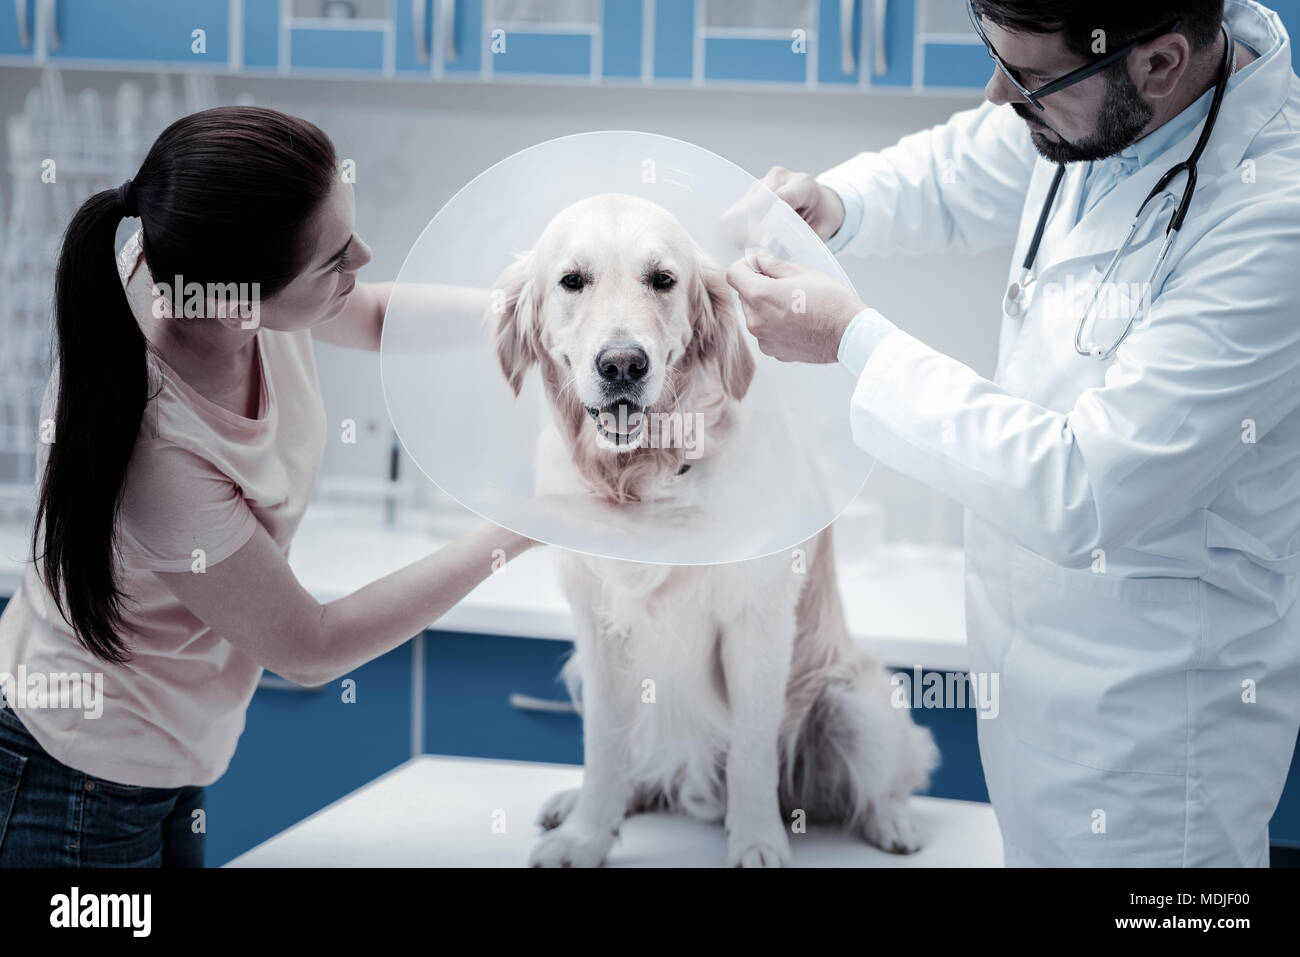 Nice cute dog wearing E collar - Stock Image